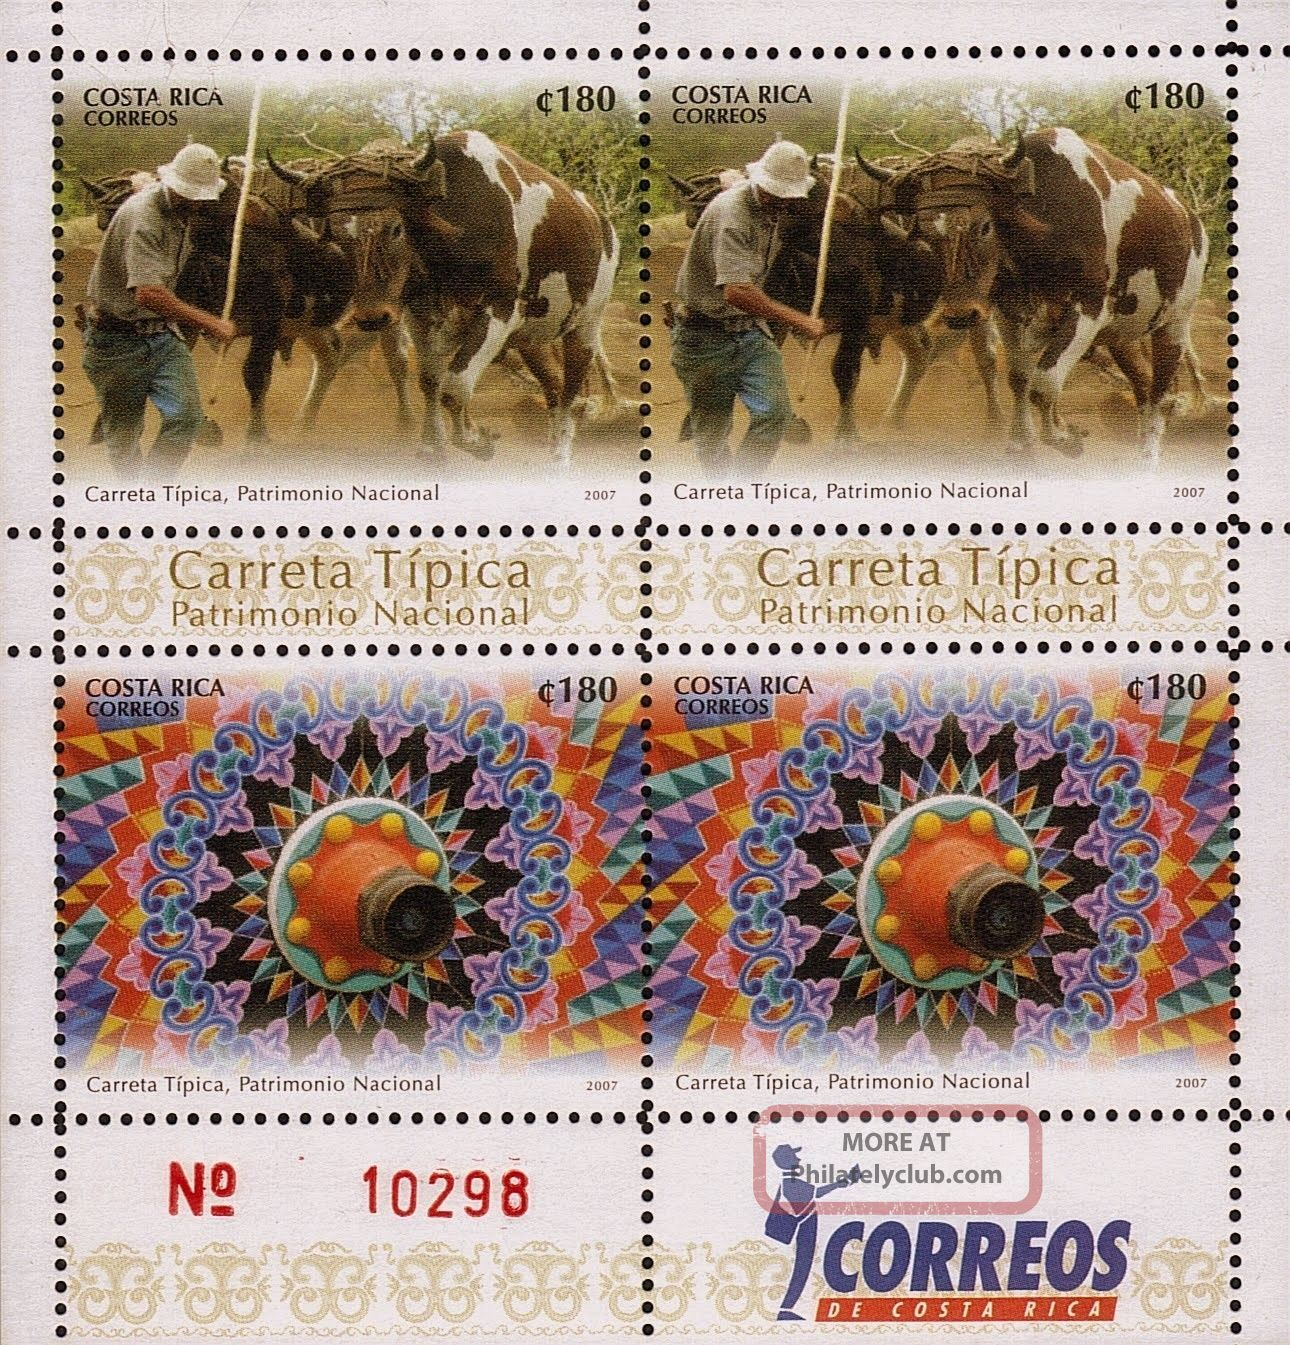 Costa Rica Ox Cart Heritage Sc 613 2007 Latin America photo